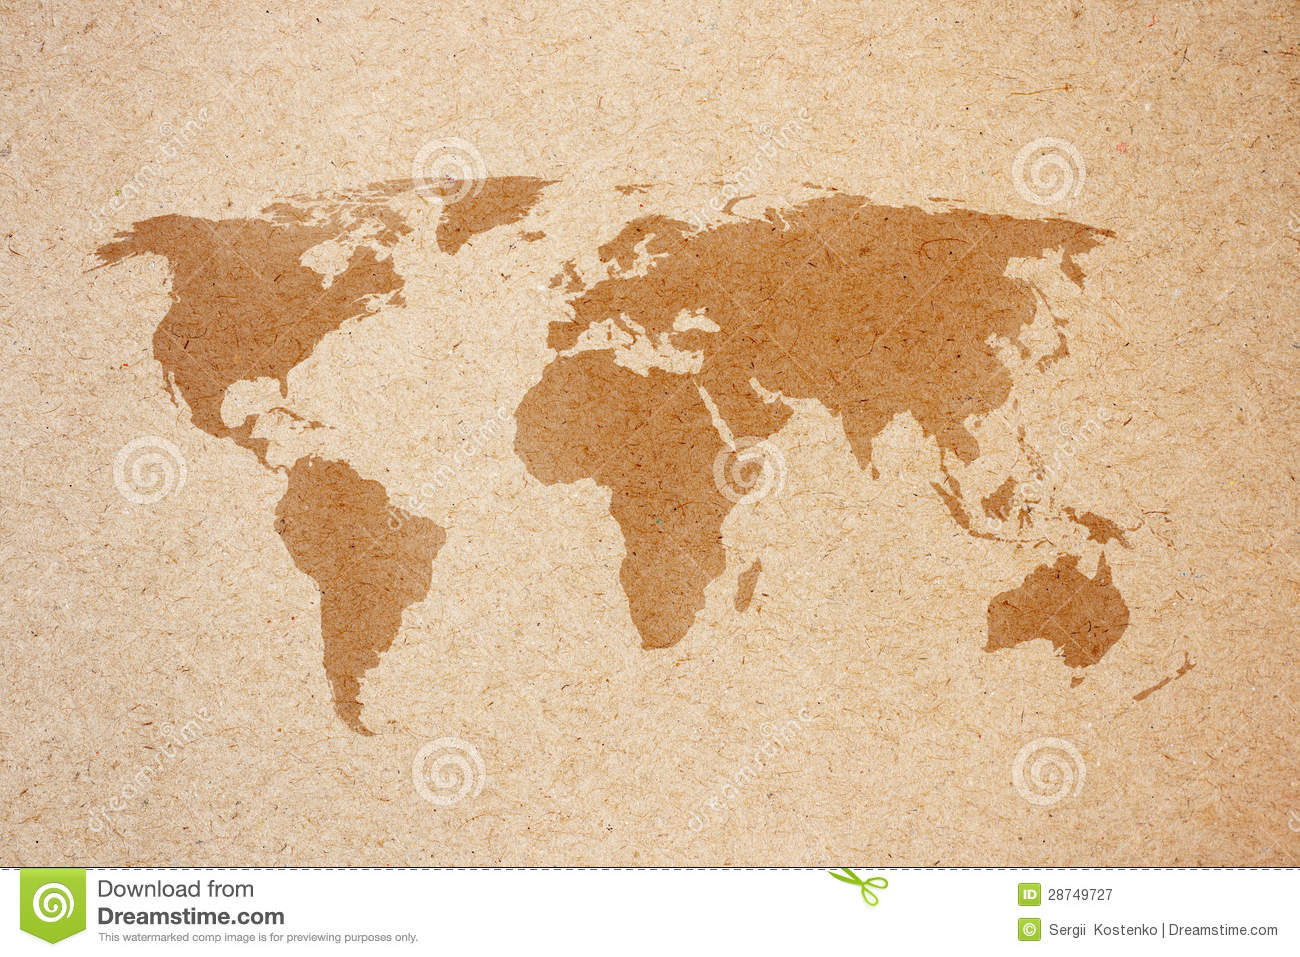 World map on natural brown recycled paper stock image image of world map on natural brown recycled paper stock image image of poster backgrounds 28749727 gumiabroncs Gallery